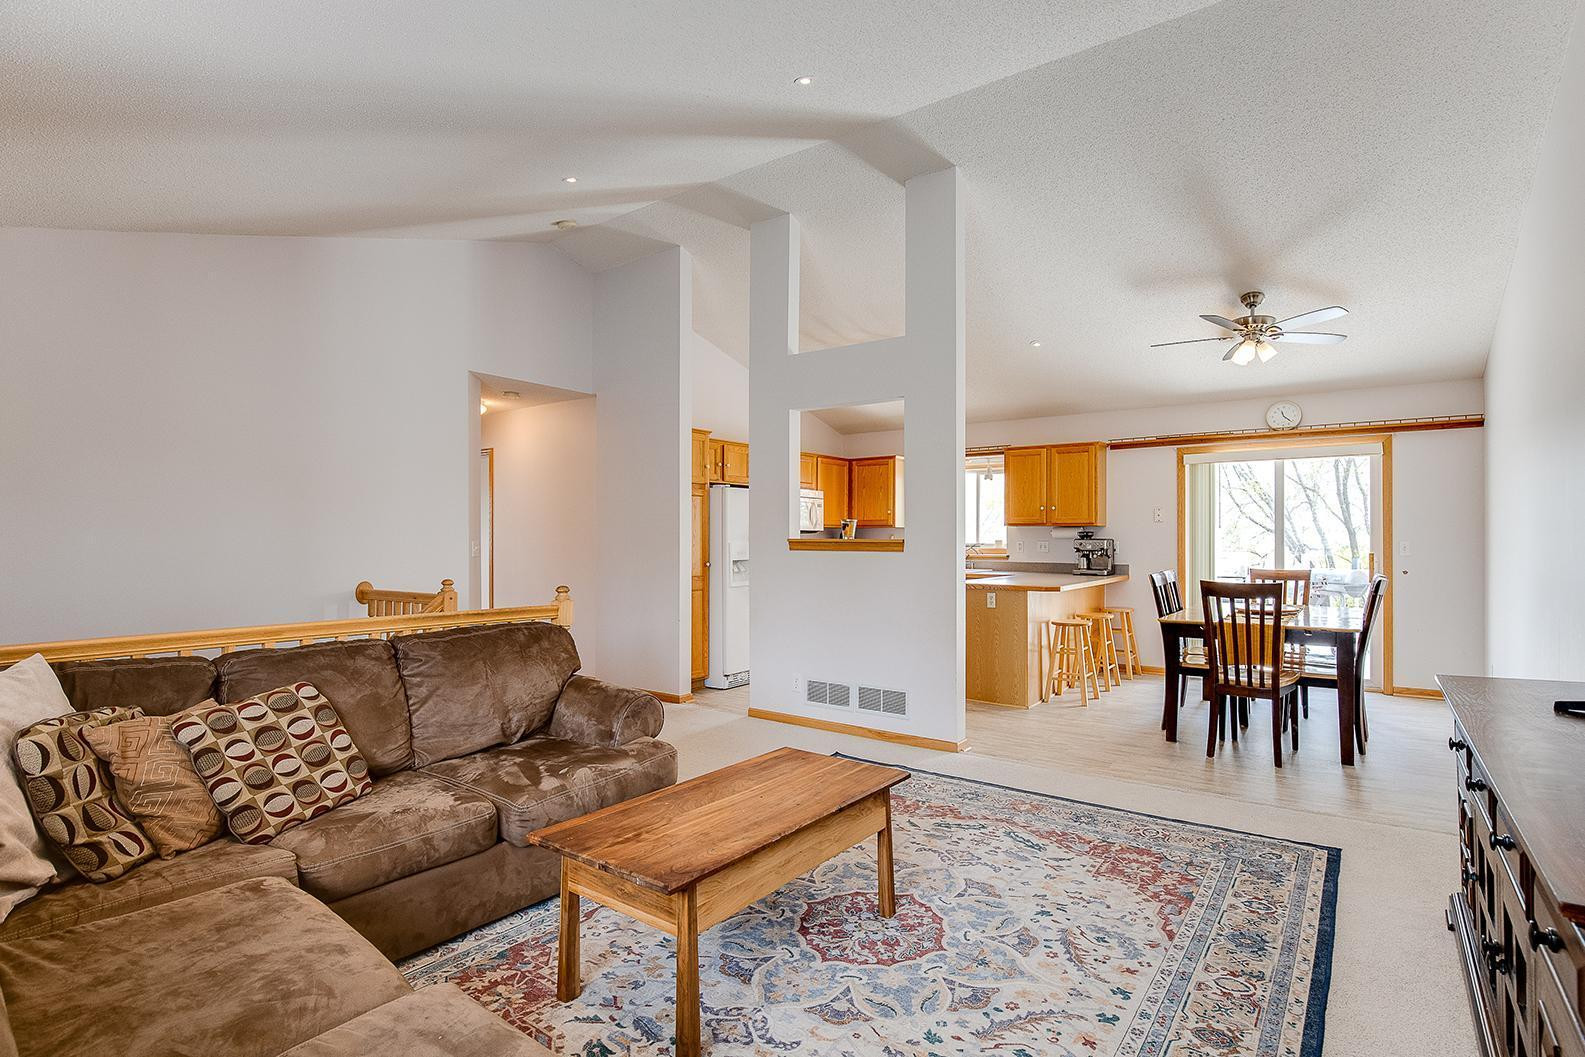 Living room is open directly to the kitchen and dining area. Make sure to check out those vaulted ceilings as well!!